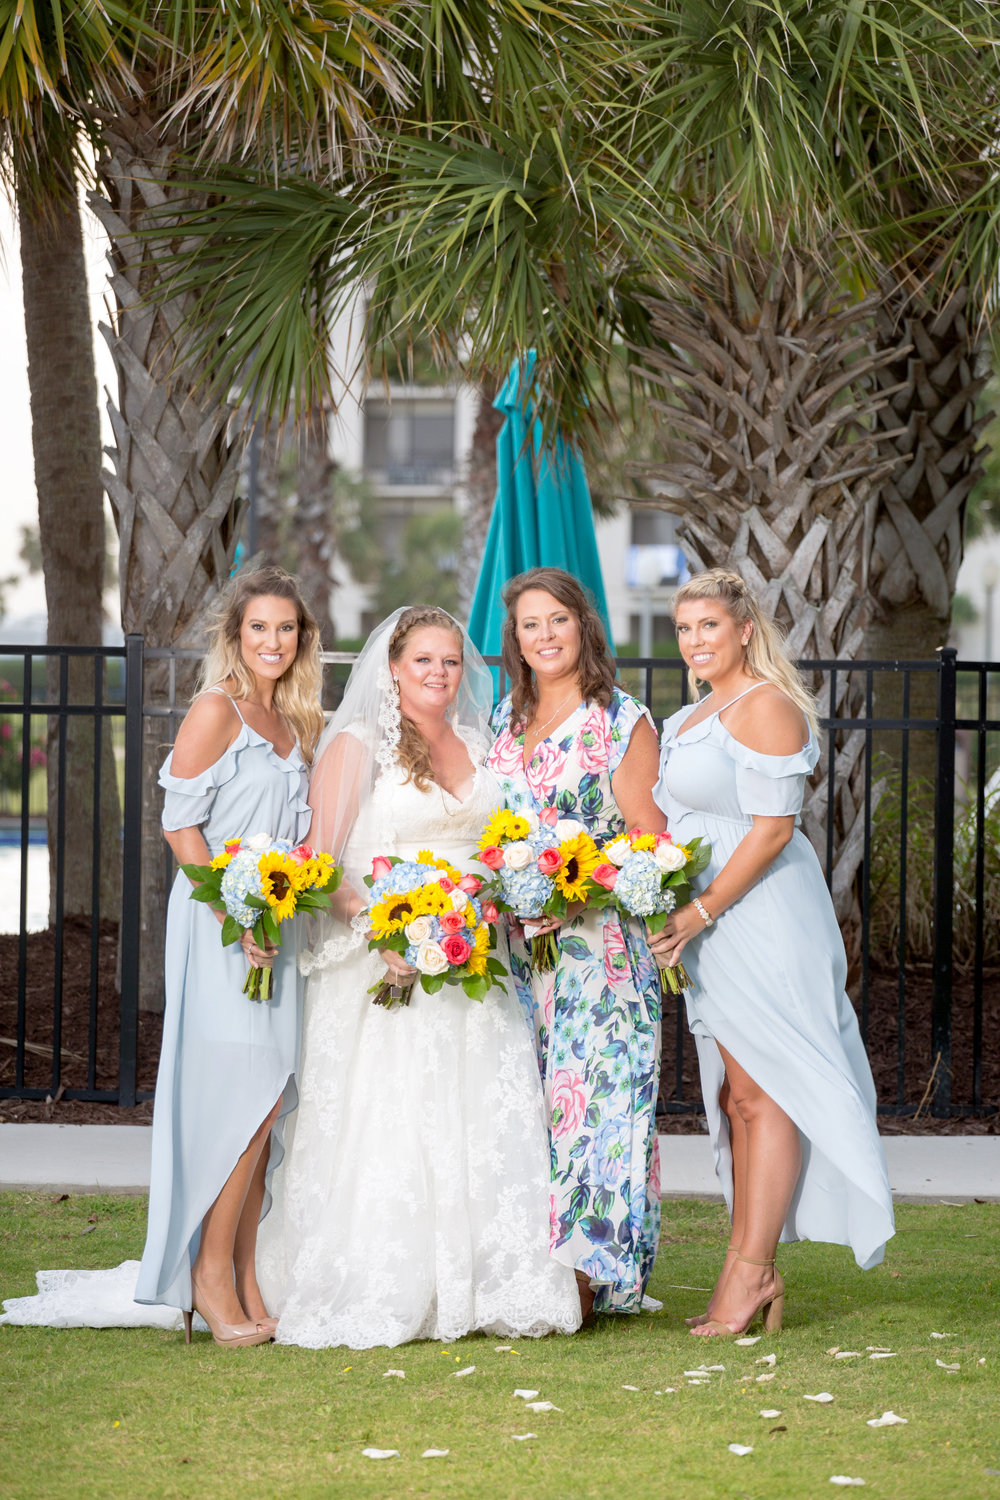 Summer Destination Wedding - Myrtle Beach19.jpg